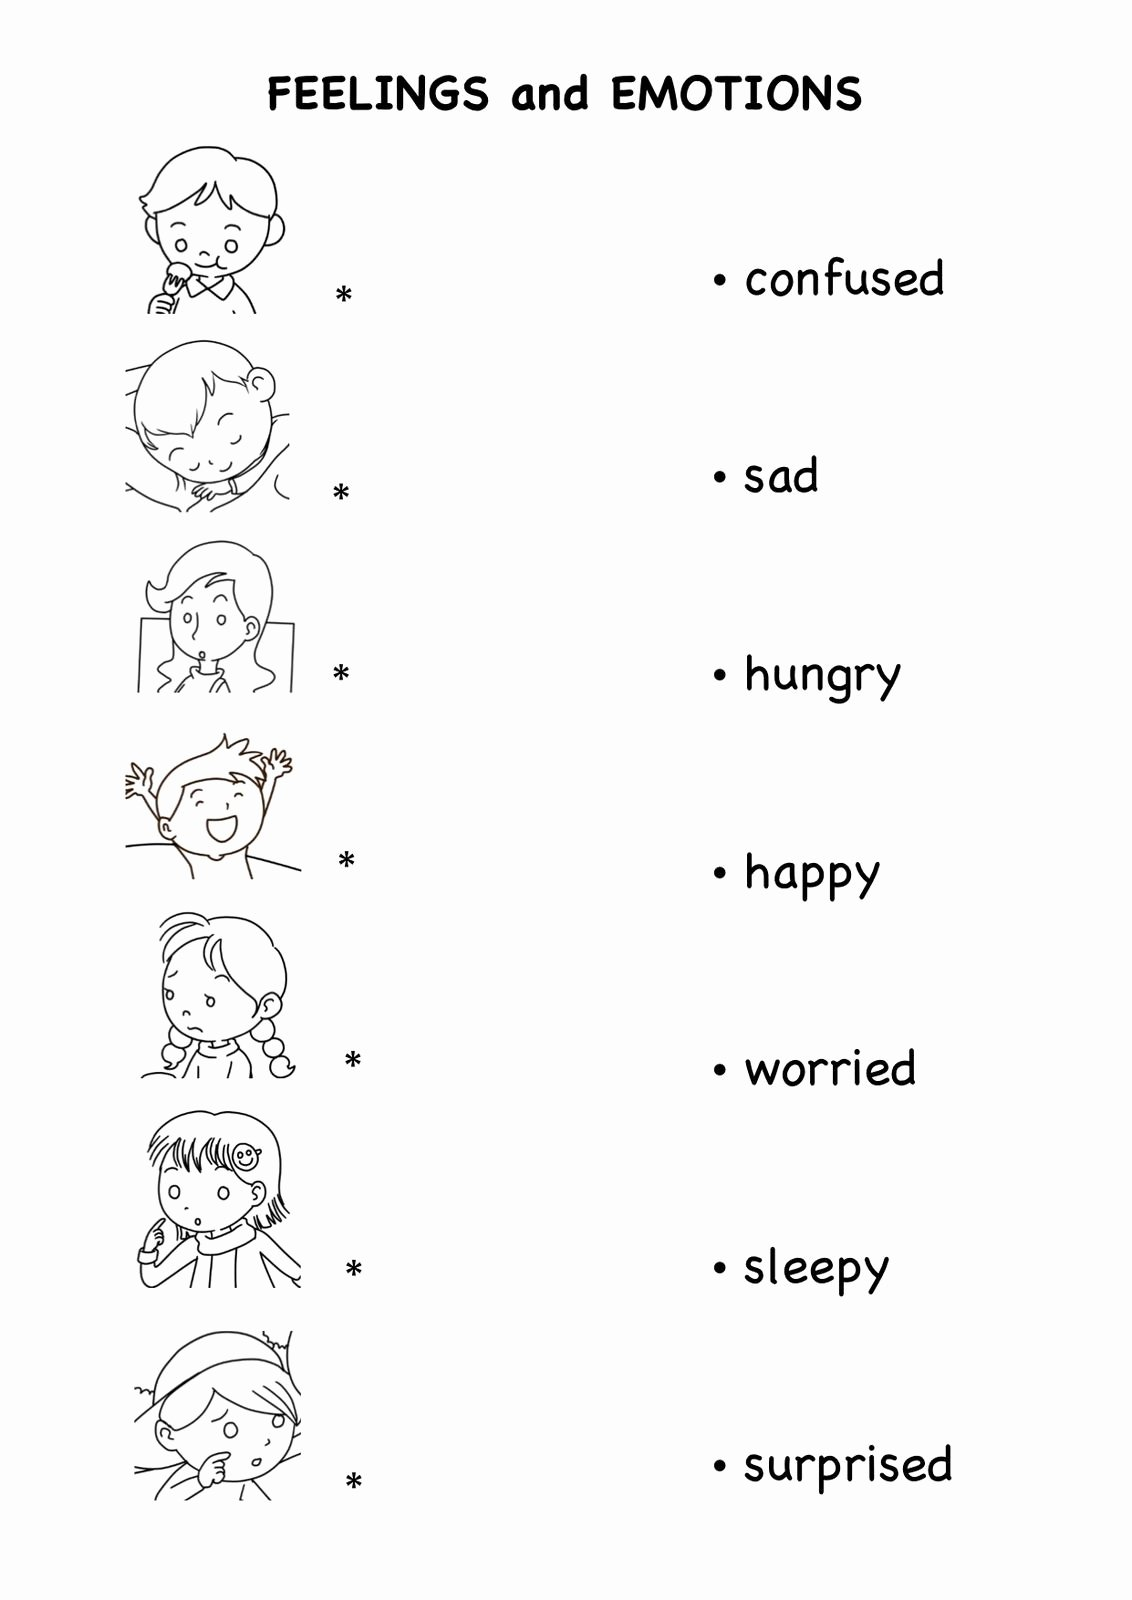 Feelings and Emotions Worksheets for Preschoolers Ideas Emotions Worksheets Pdf